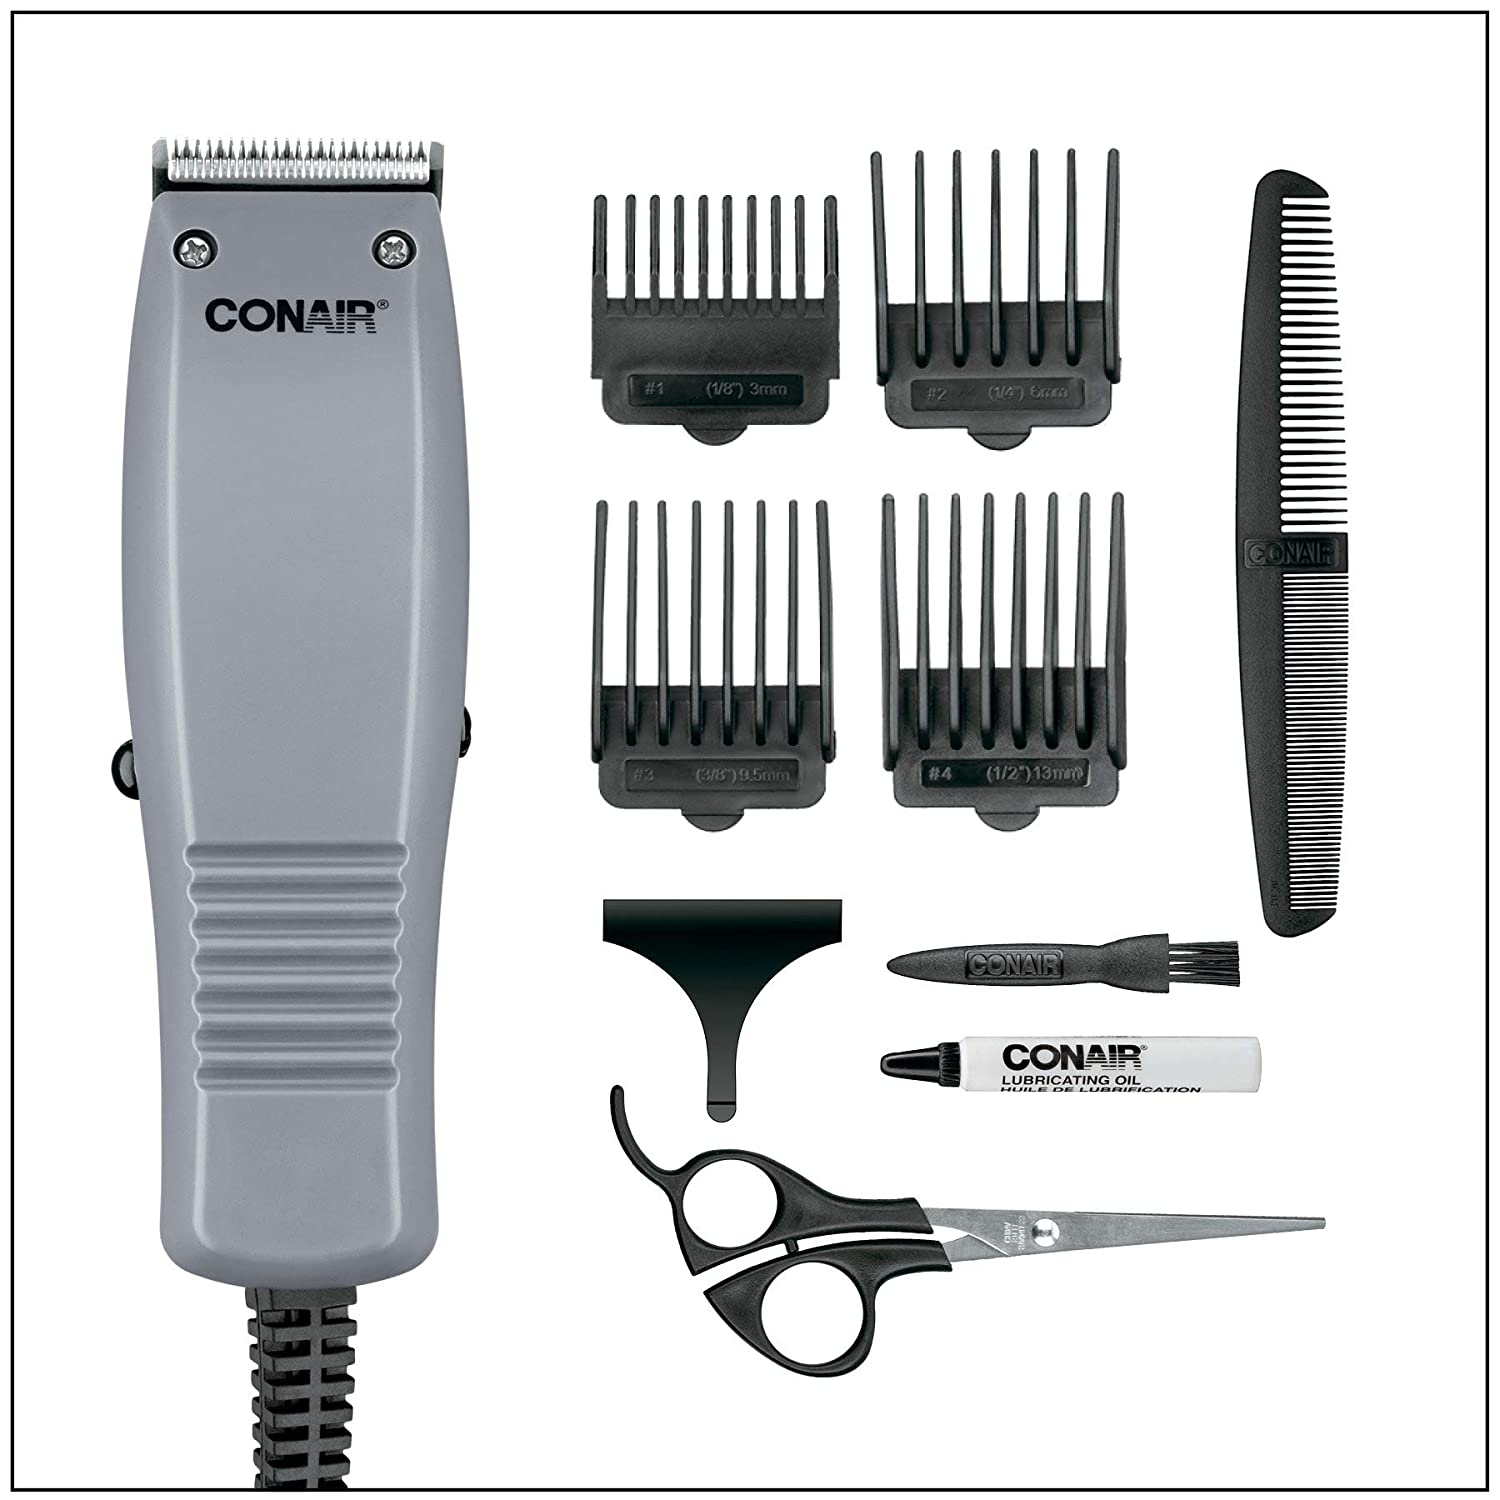 Conair 10-piece Simple Cut Haircut Kit, Home Hair Cutting Kit